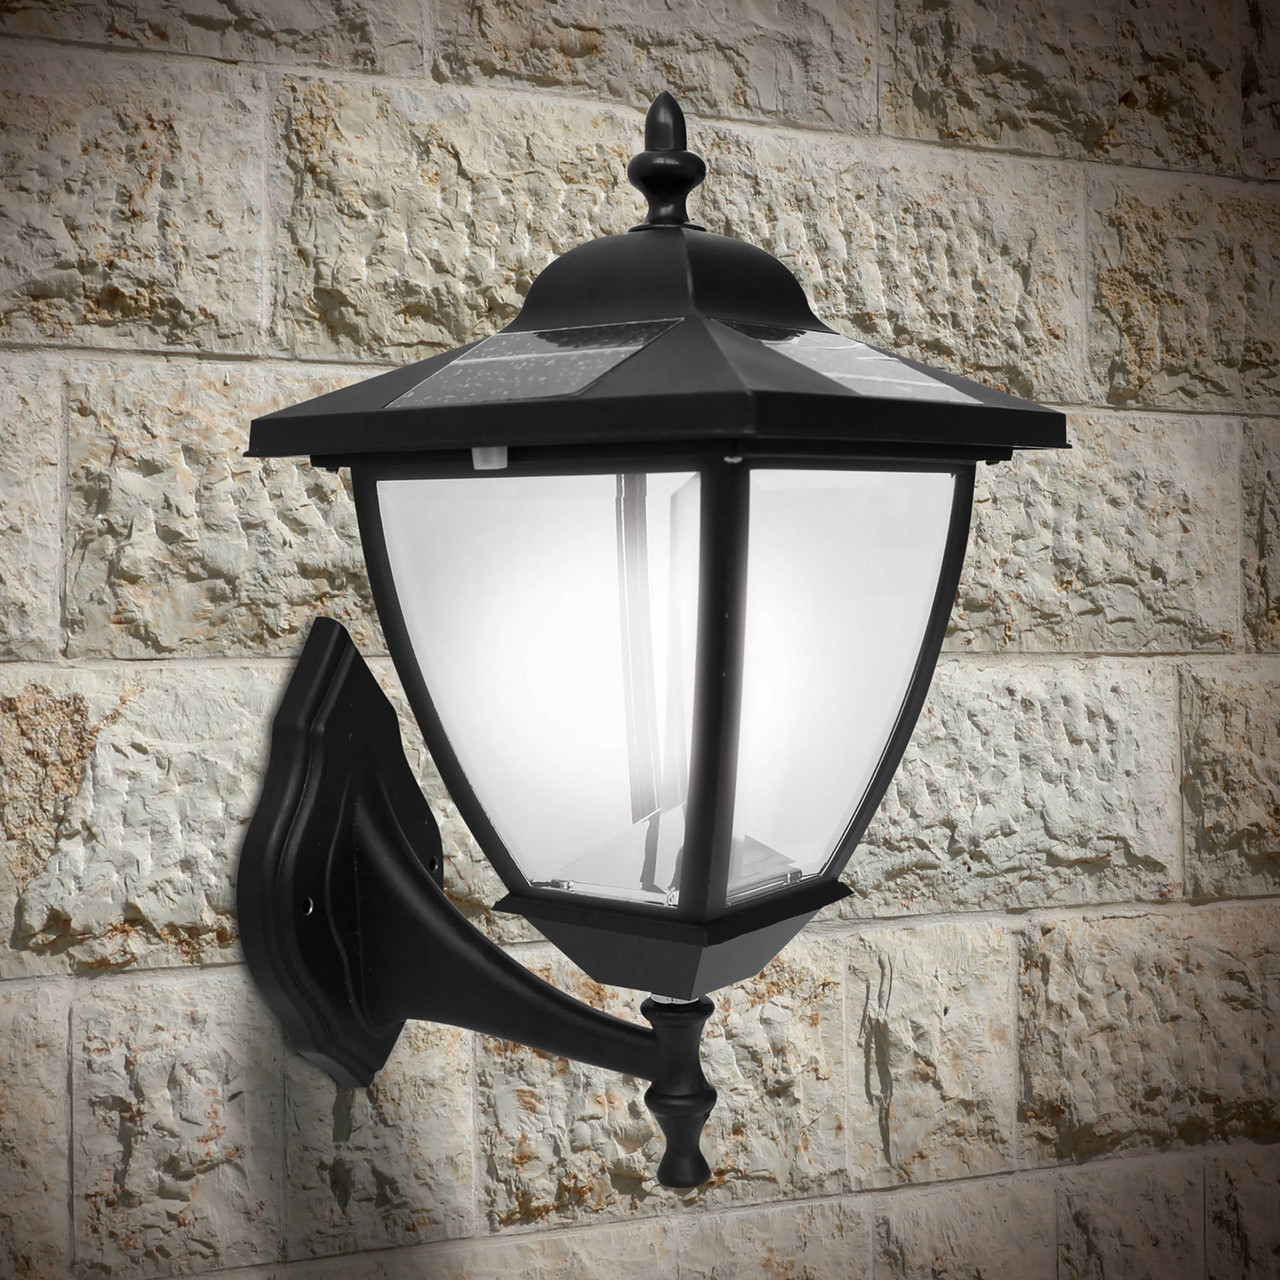 Elegante Solar Post Lamp from Classy Caps with Wall Mount